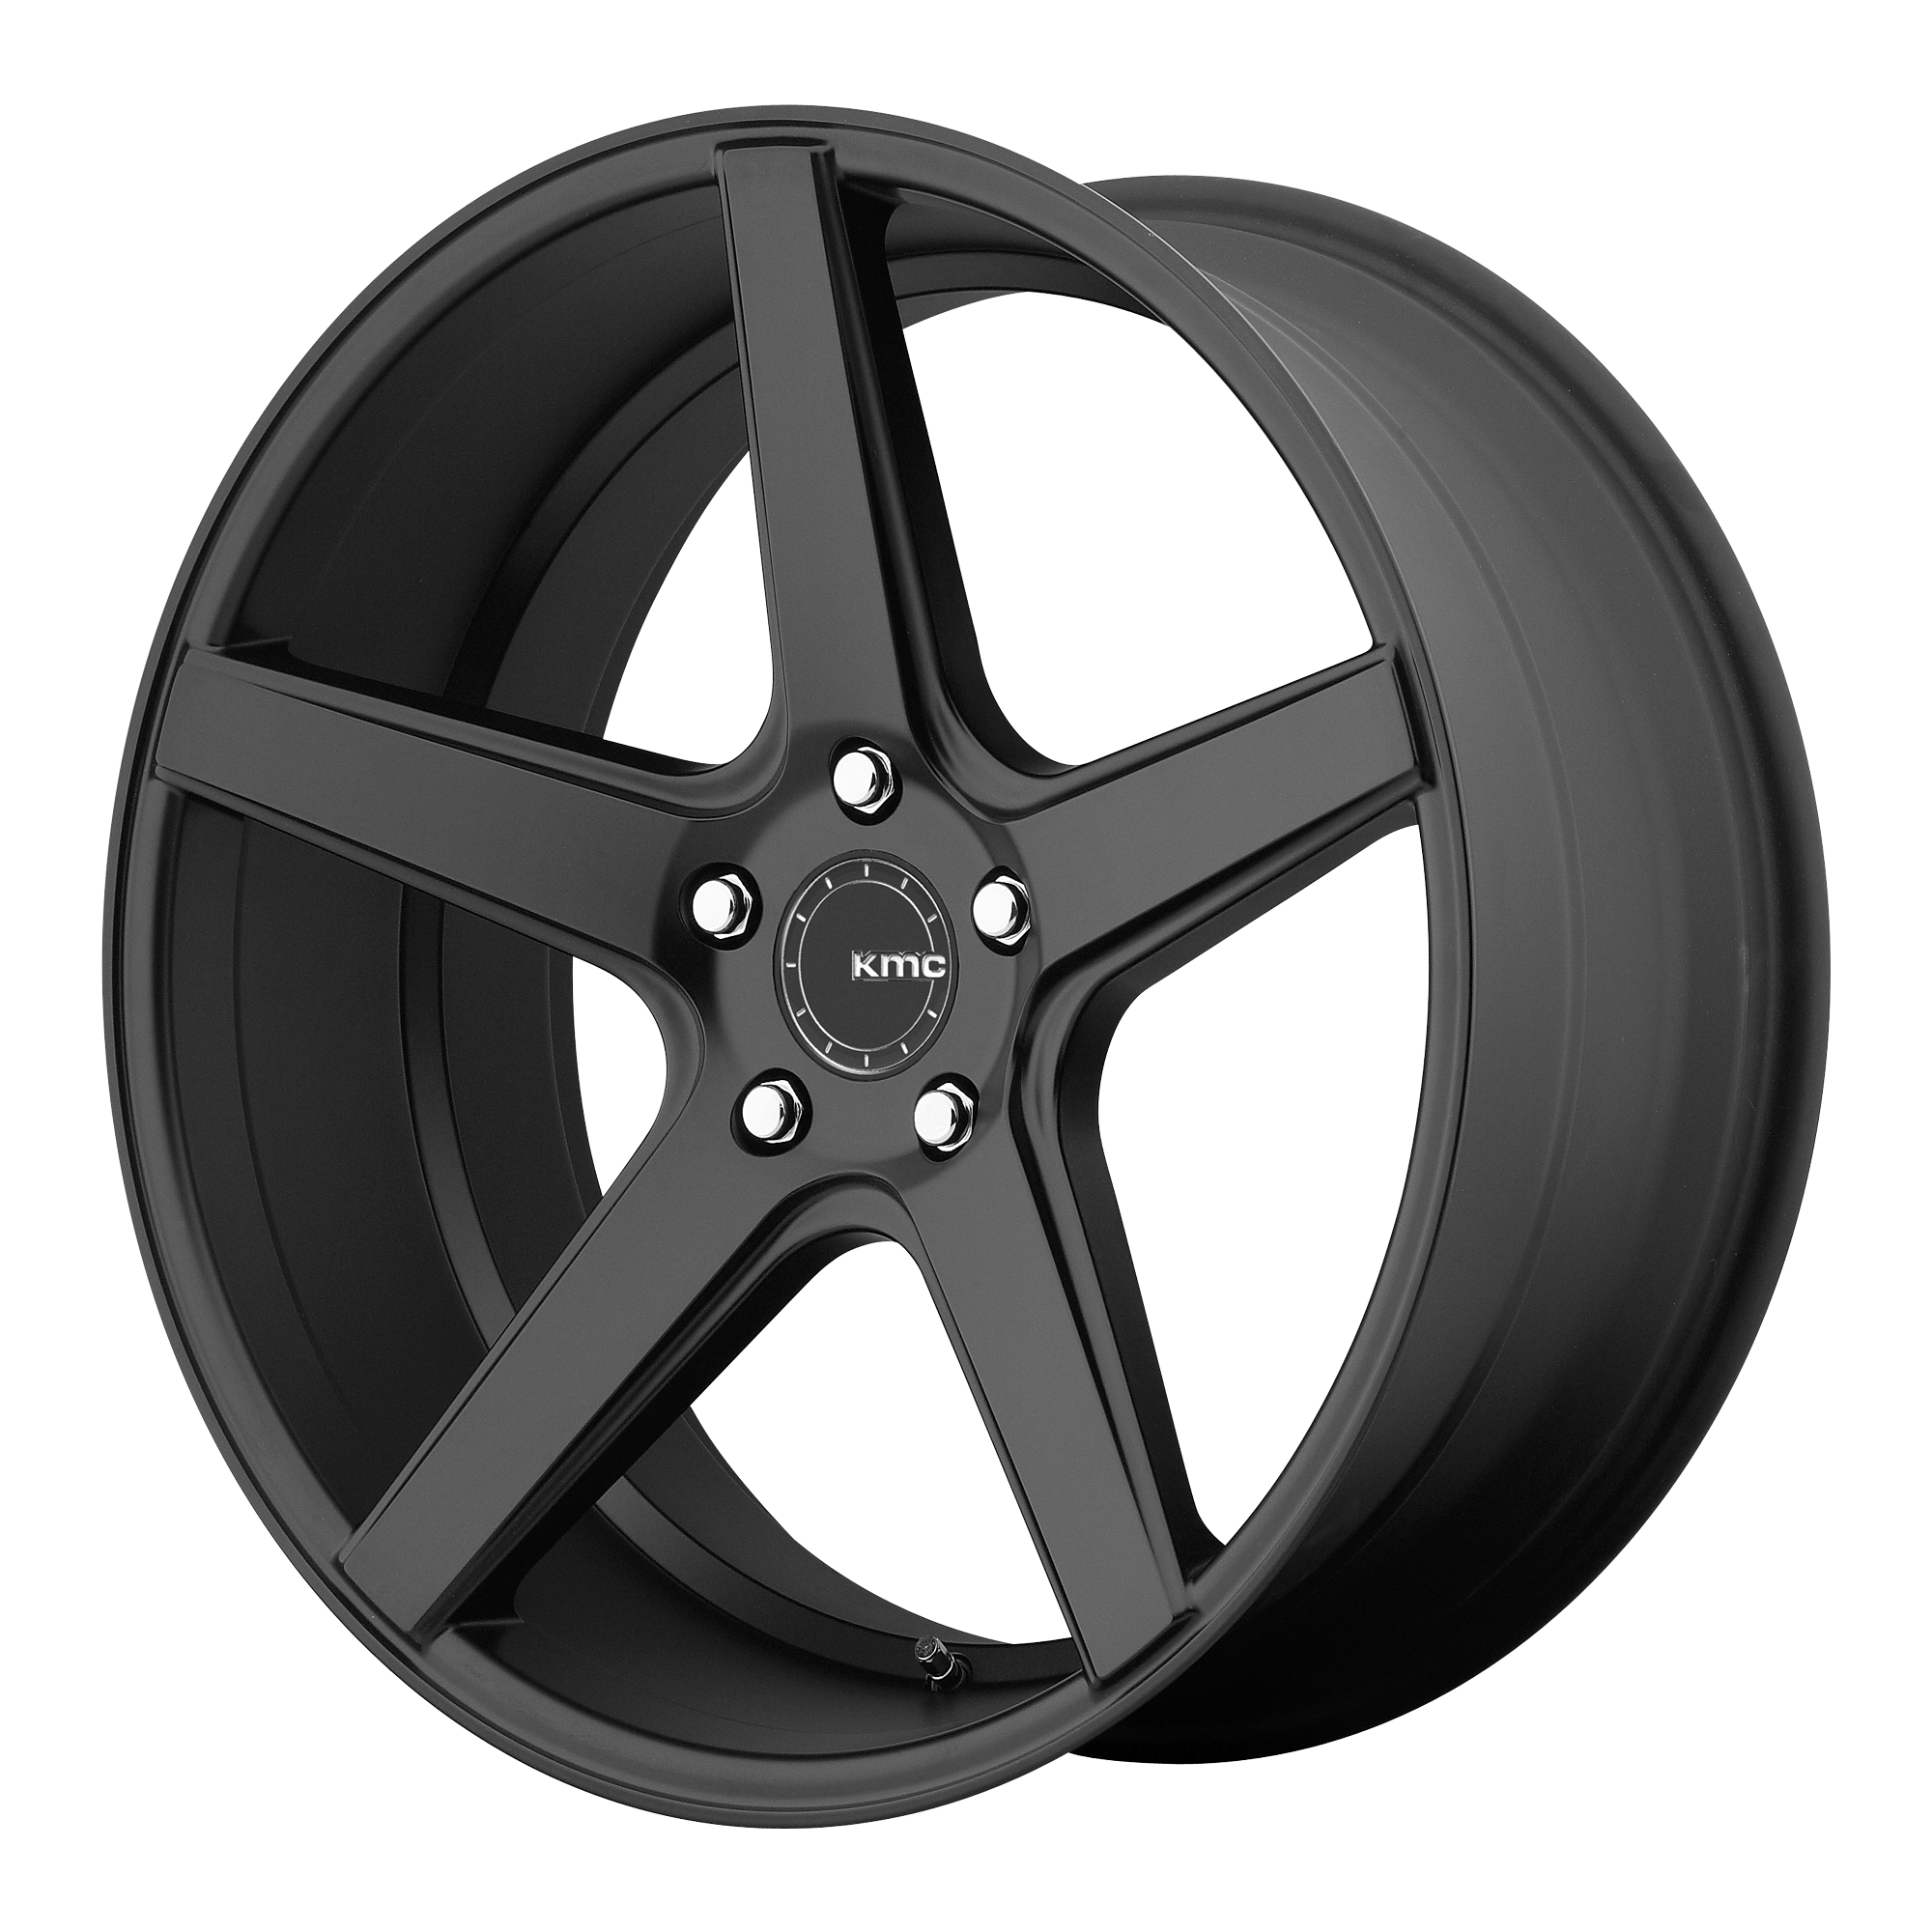 KMC Wheels DISTRICT Satin Black